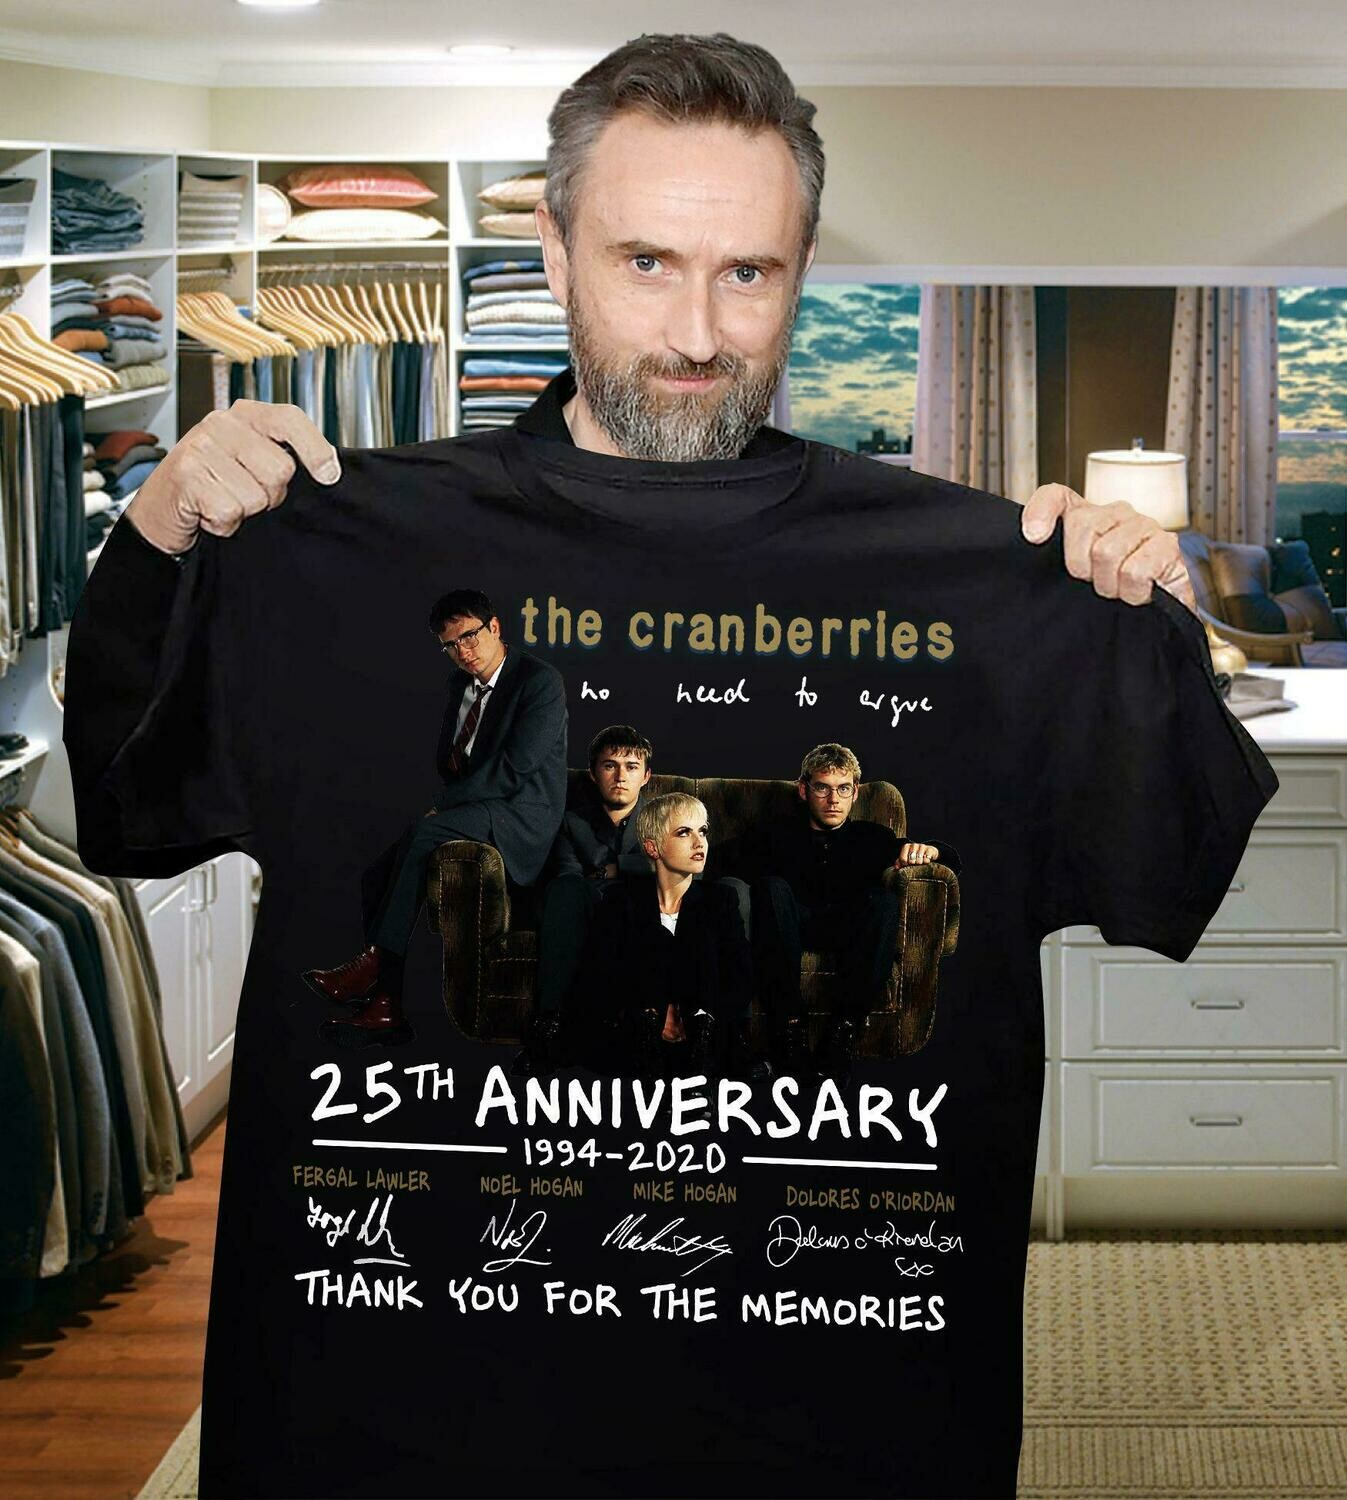 The Cranberries No Hud To Jue 25th anniversary thank you for the memories signatures shirt